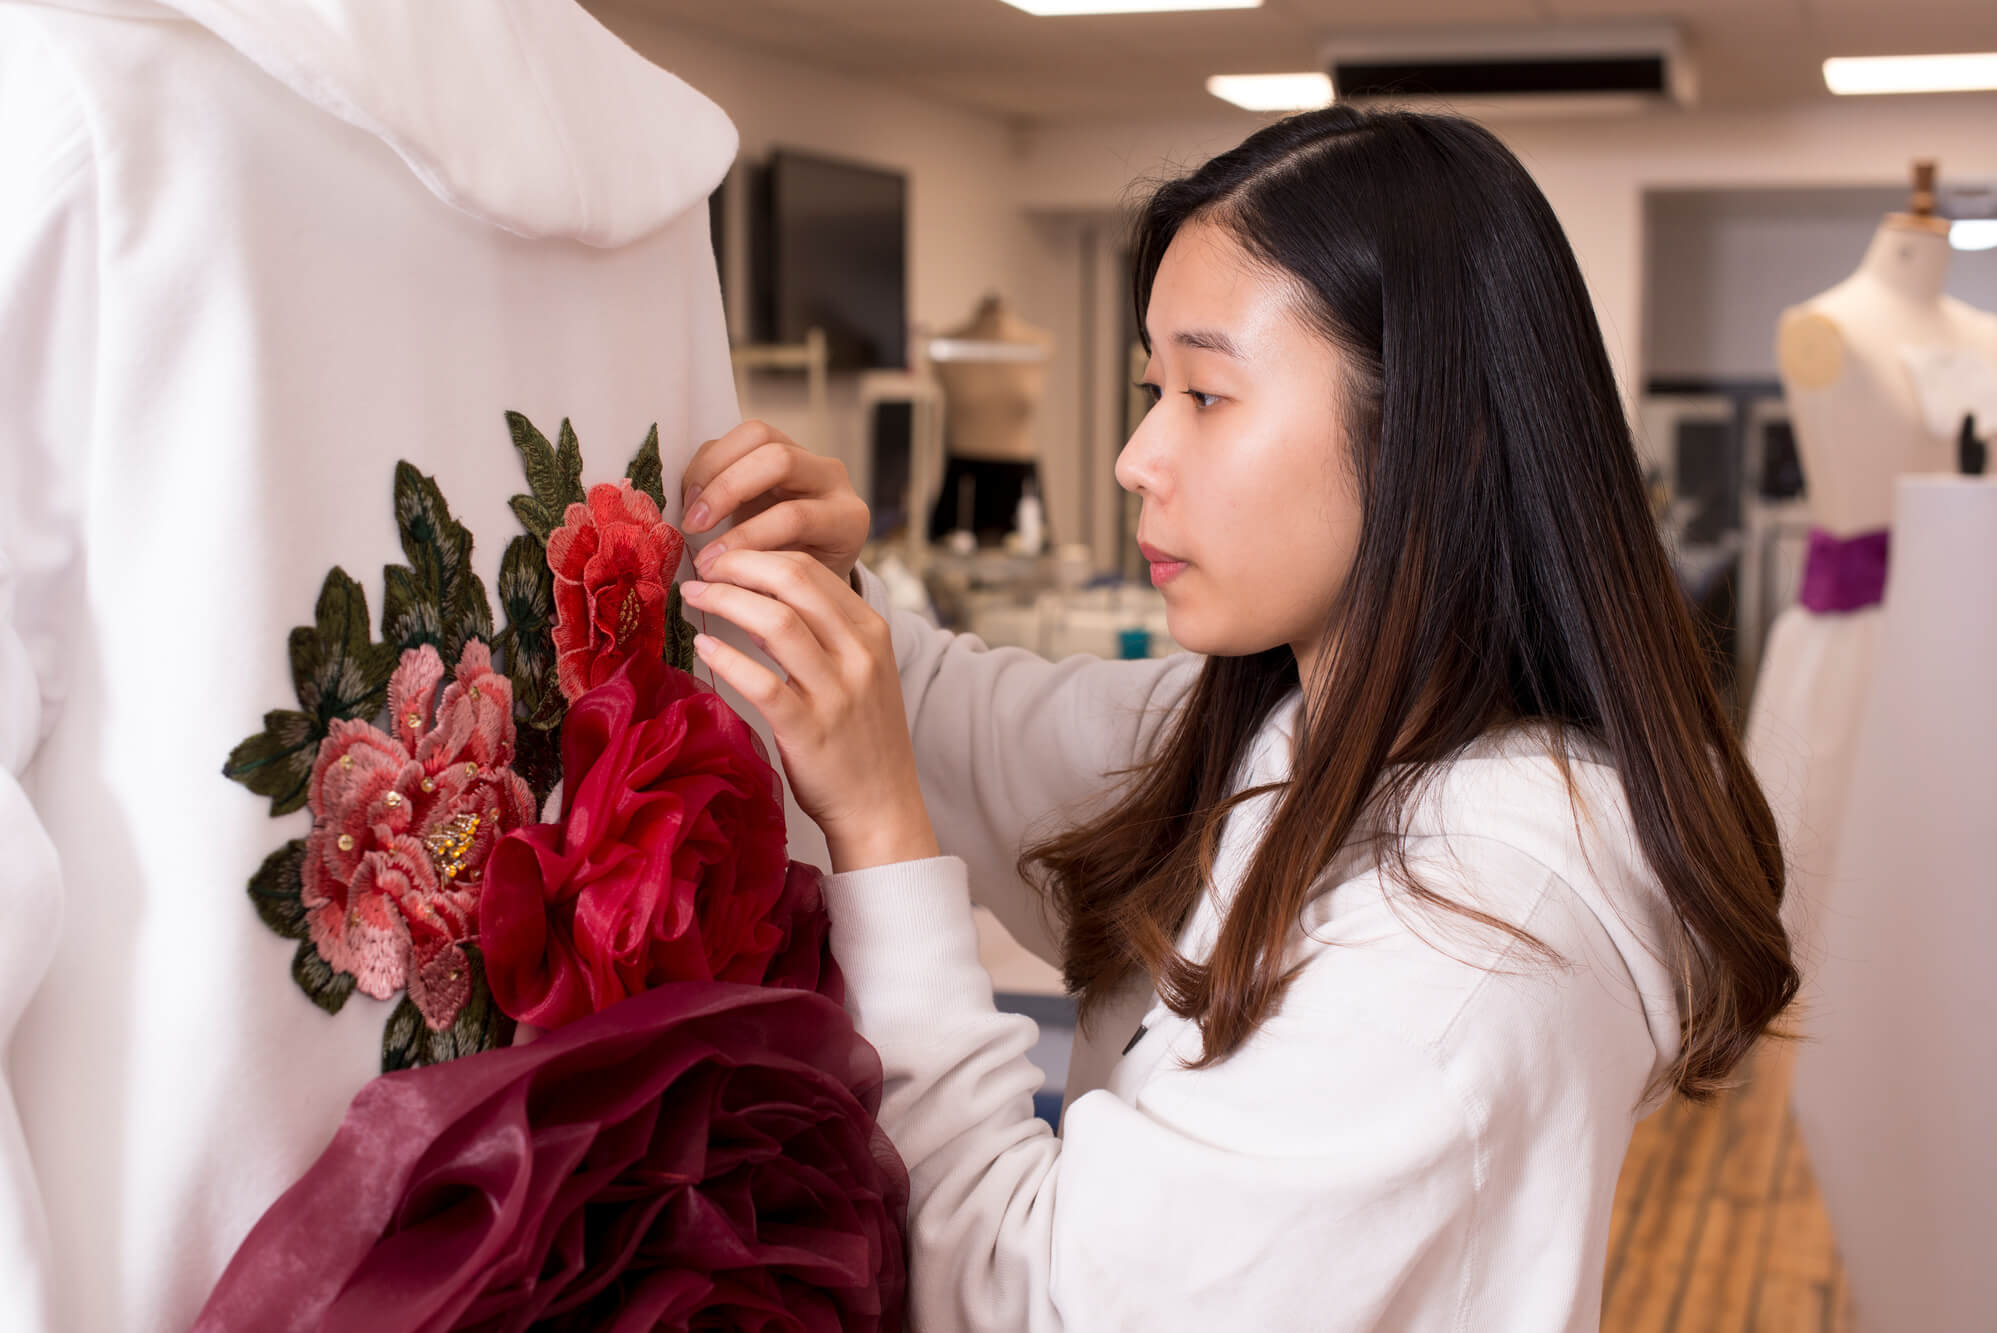 A female puts the finishing touches to a white garment embellished with pink and red floral embroidery and 3d flowers